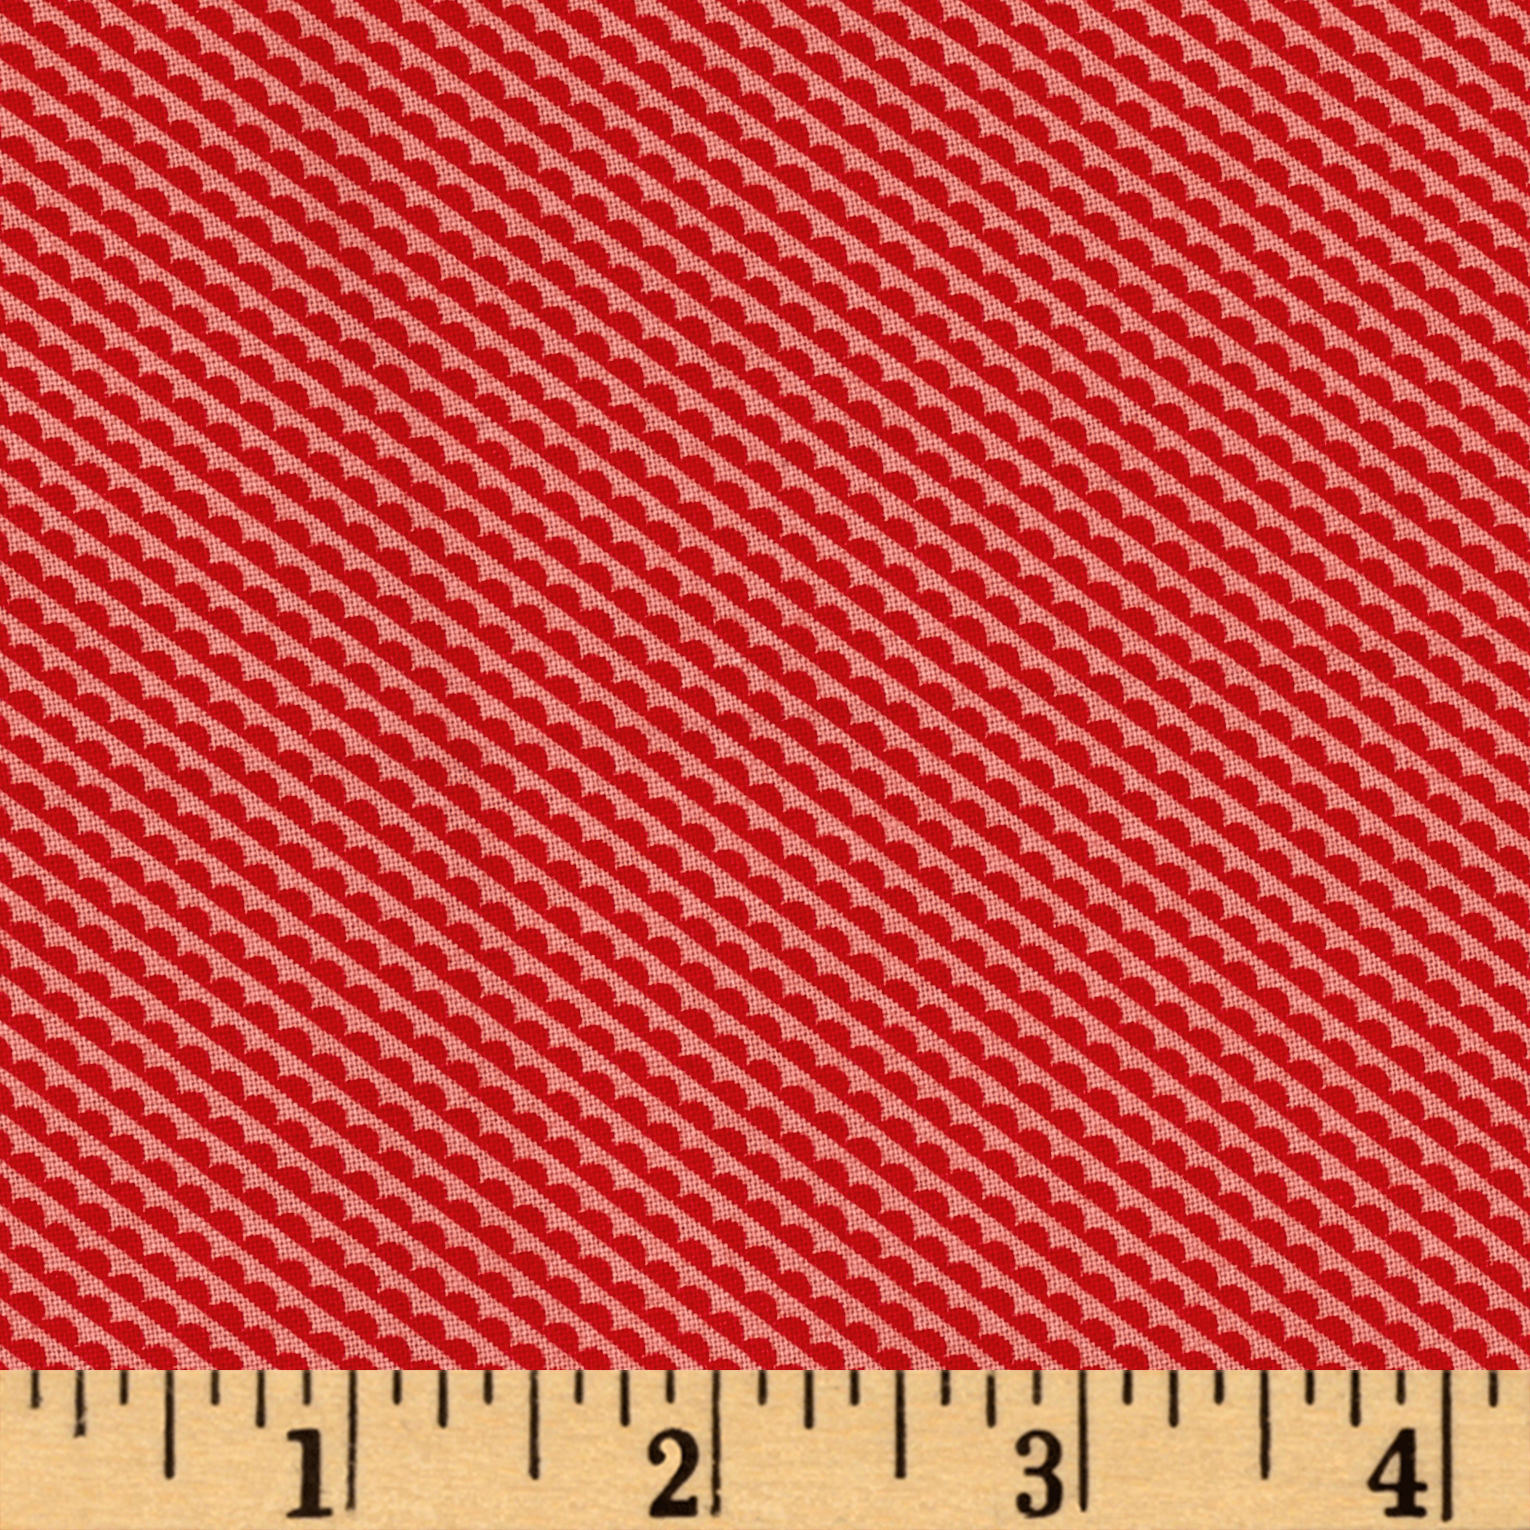 Moda Little Ruby Little Sundae Red/Coral Fabric by Moda in USA